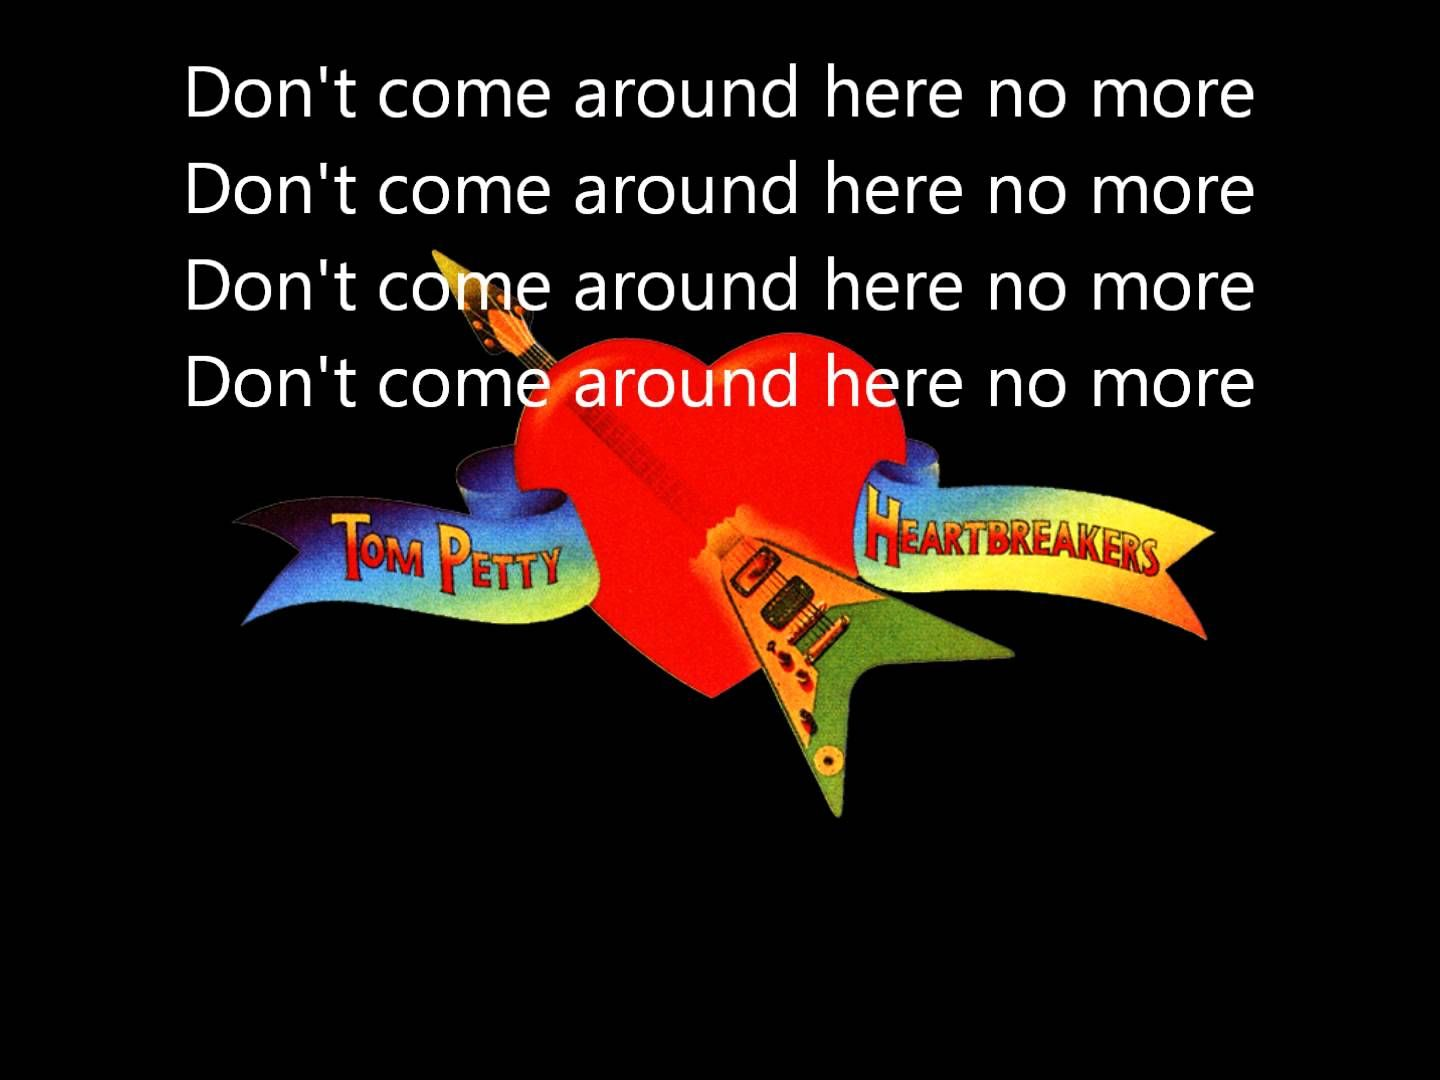 Tom Petty And The Heartbreakers Don T Come Around Here No More Lyrics